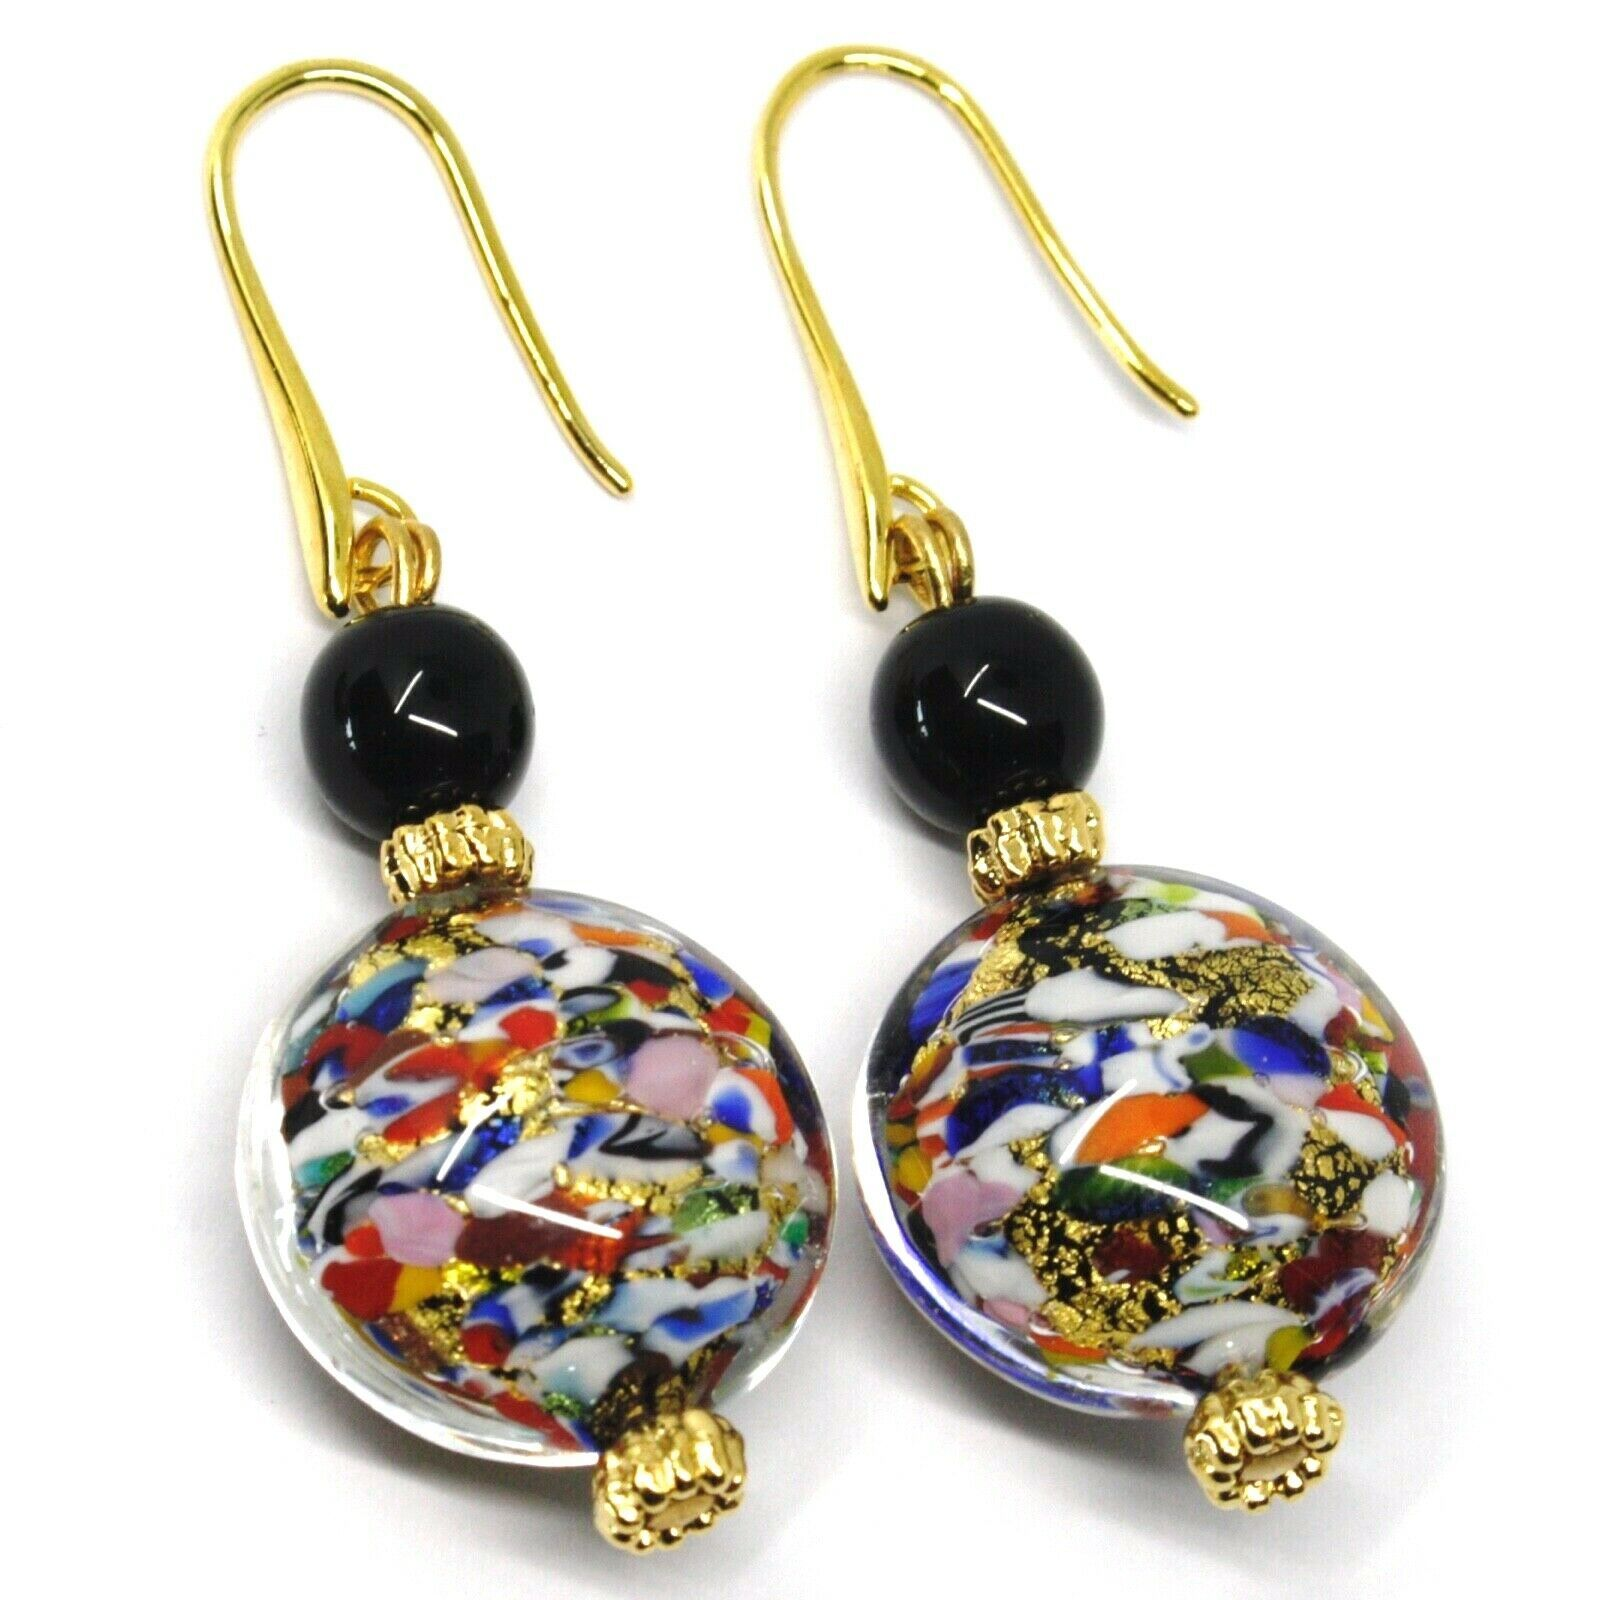 PENDANT EARRINGS MACULATE MULTI COLOR MURANO GLASS DISC, GOLD LEAF, ITALY